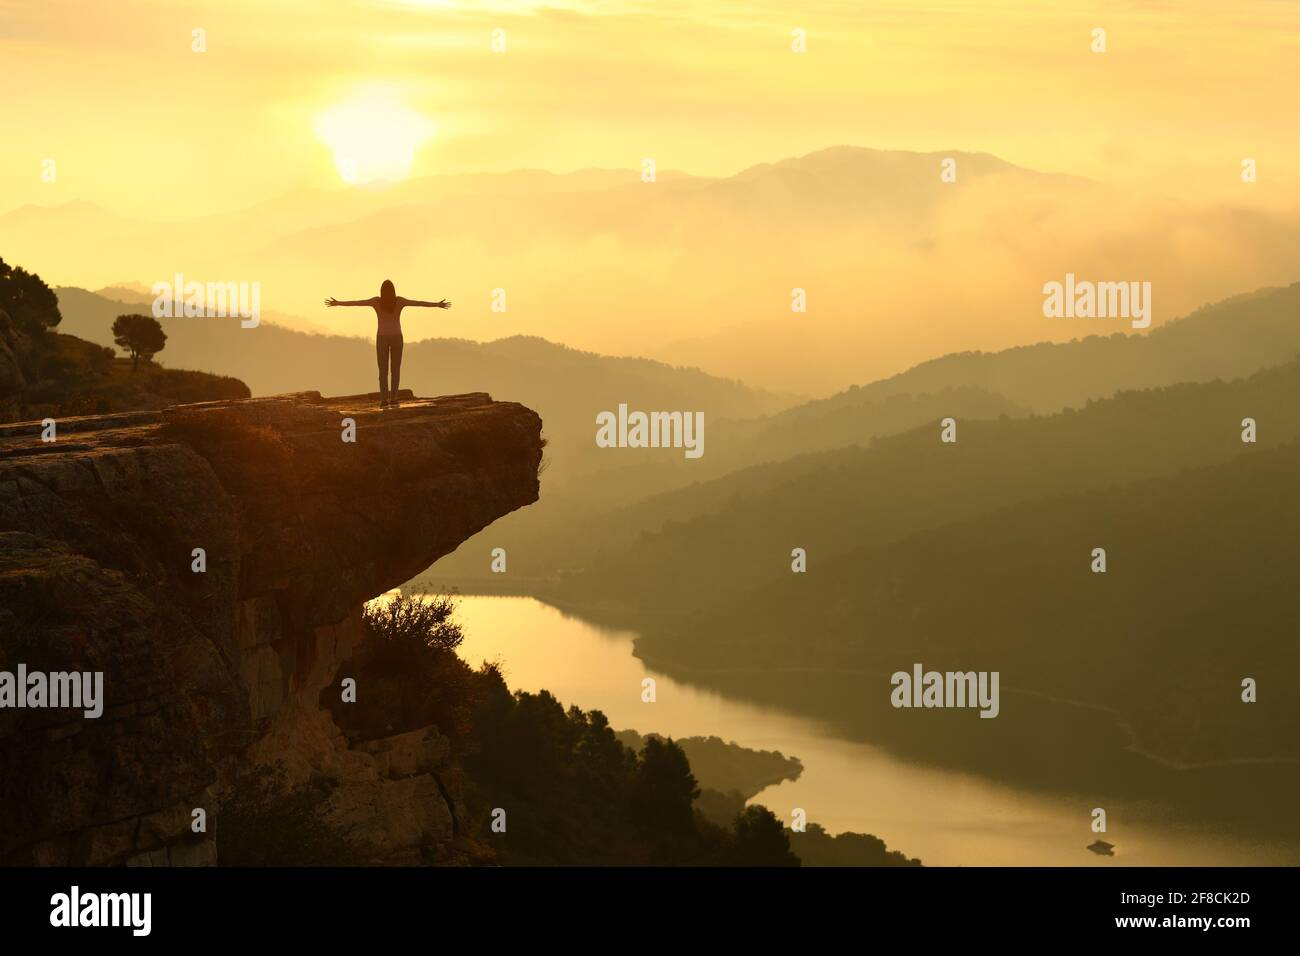 Back view portrait of a woman silhouette celebrating success in a beautiful sunset landscape Stock Photo